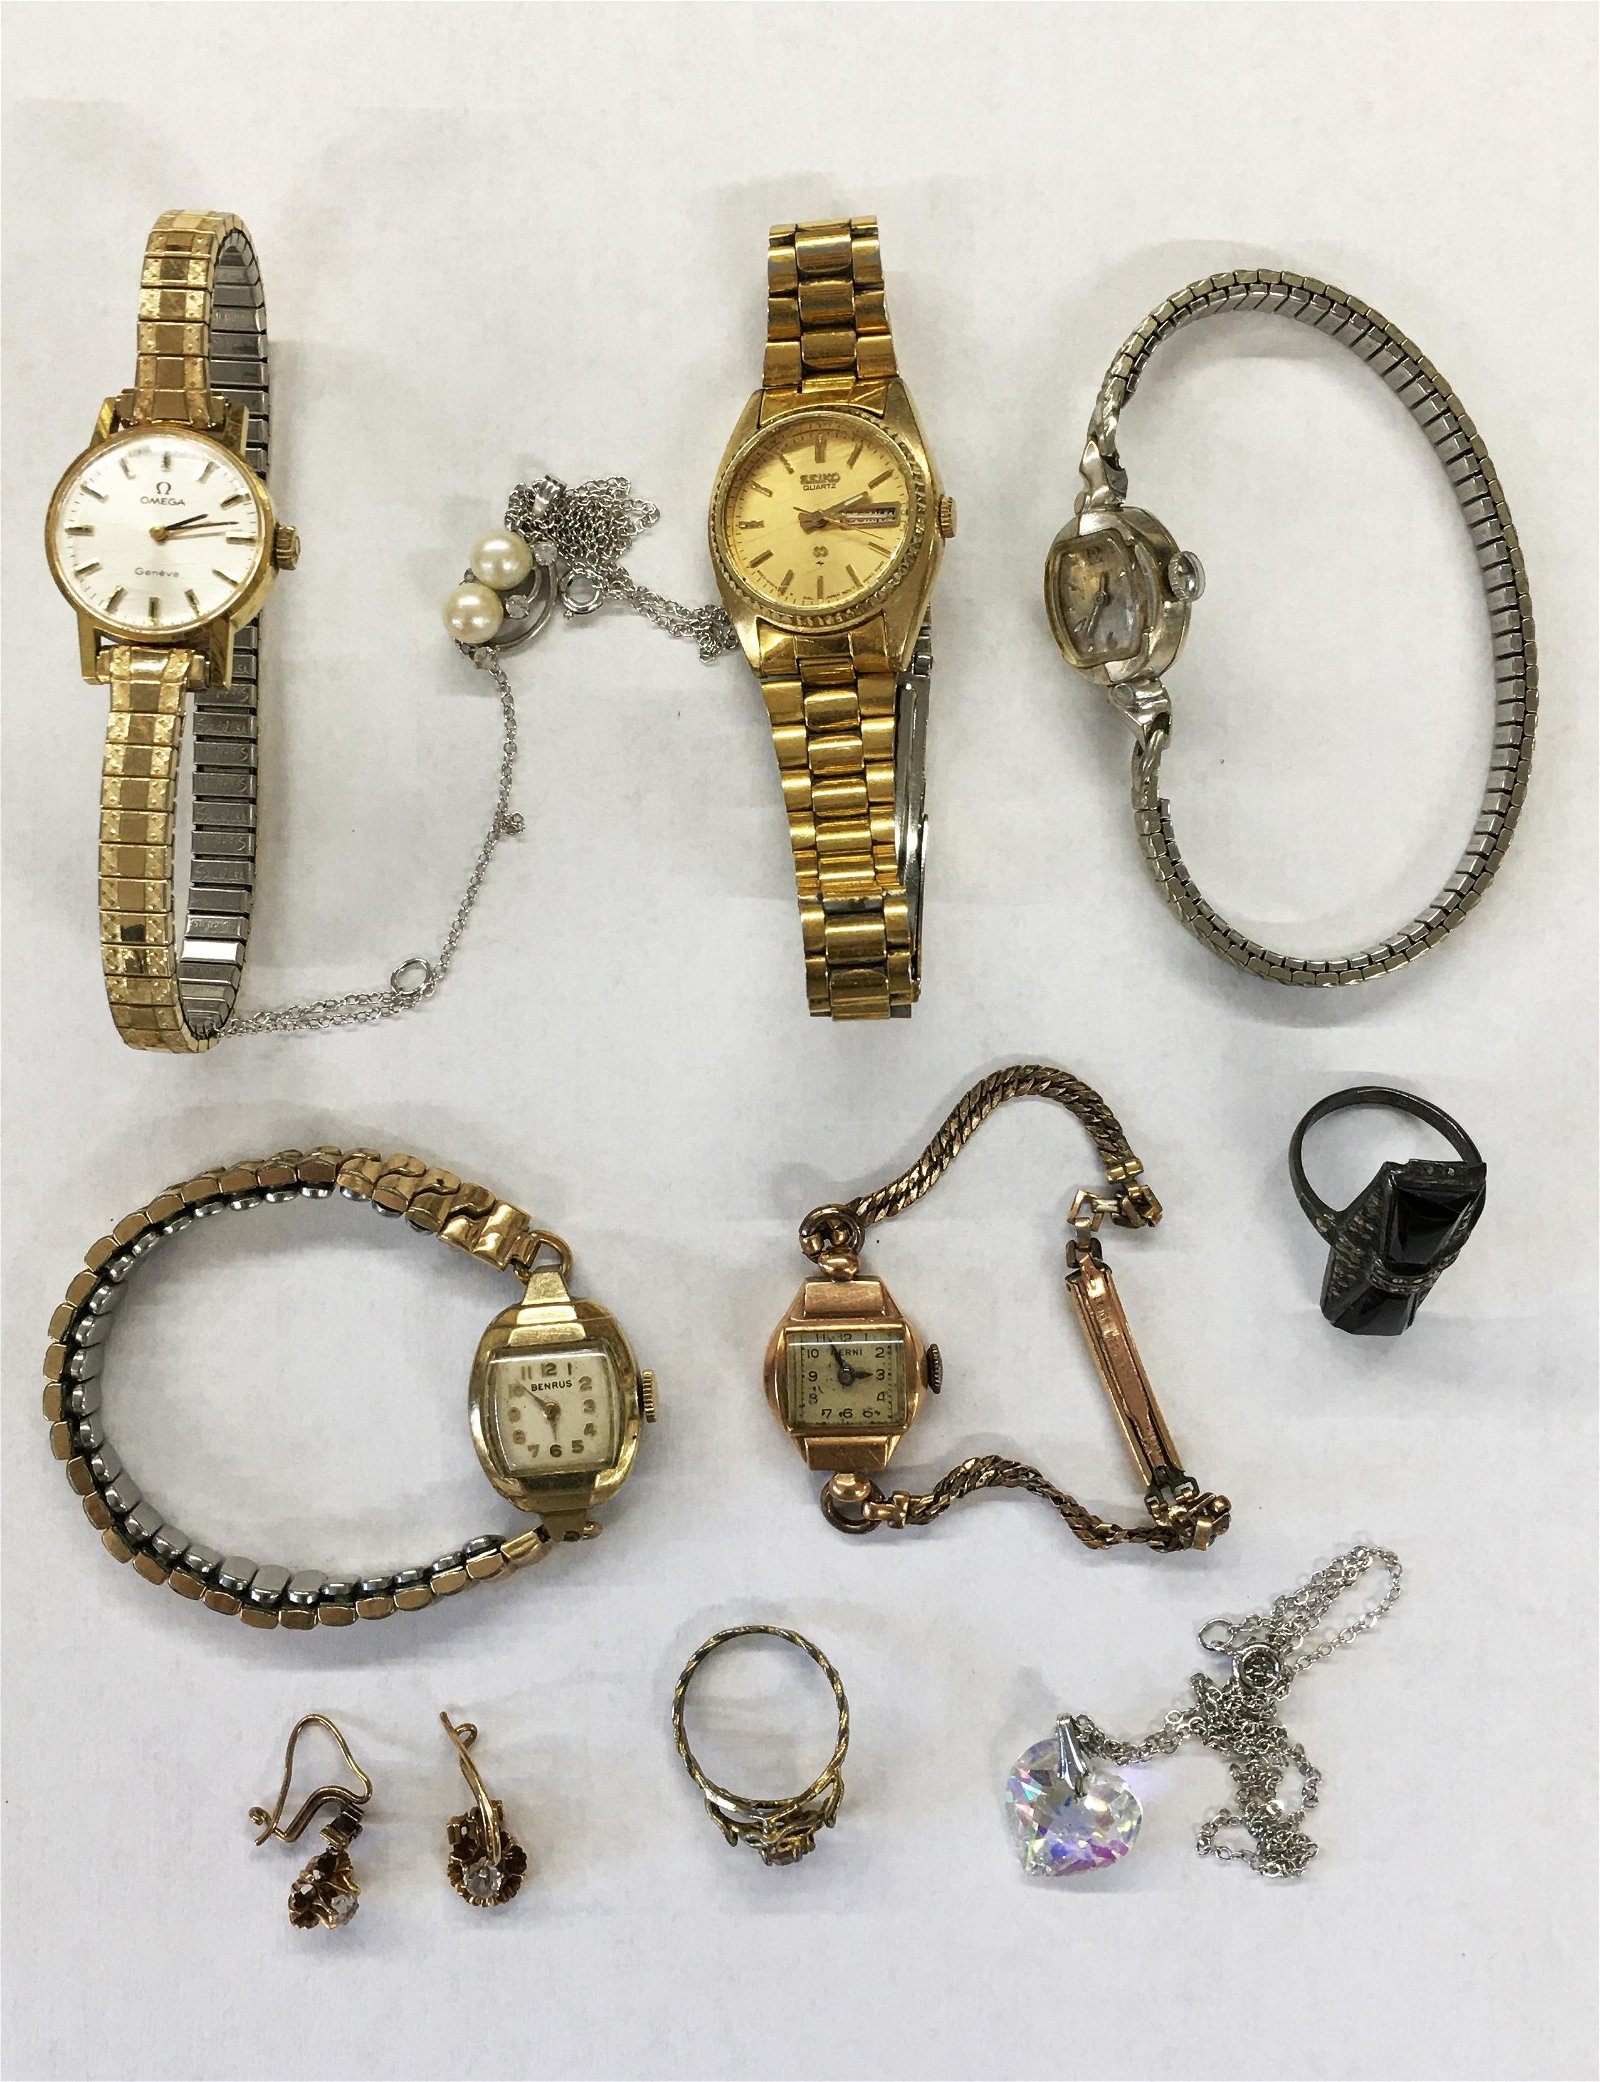 Lot of Asst. Ladies' Watches & Art Deco Ring.